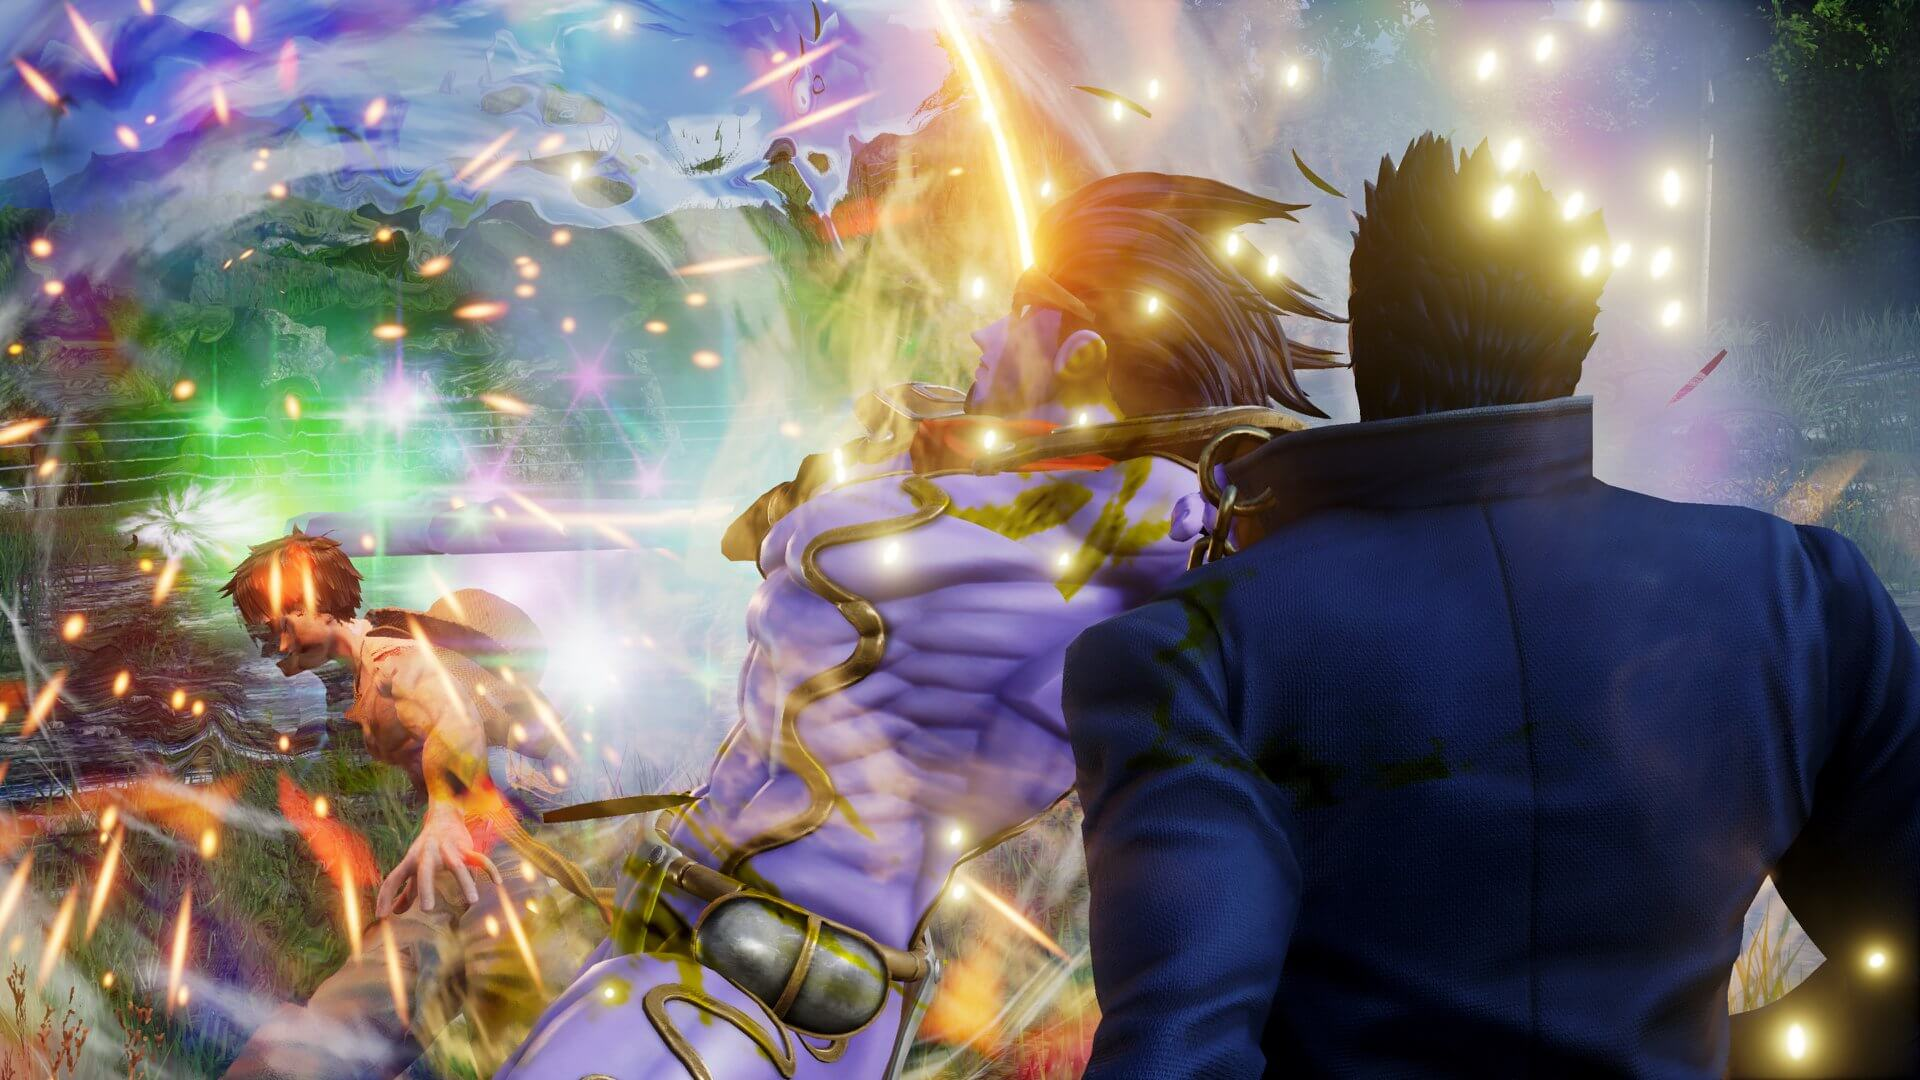 Free nulled jump force for Android Game download jumpforce in